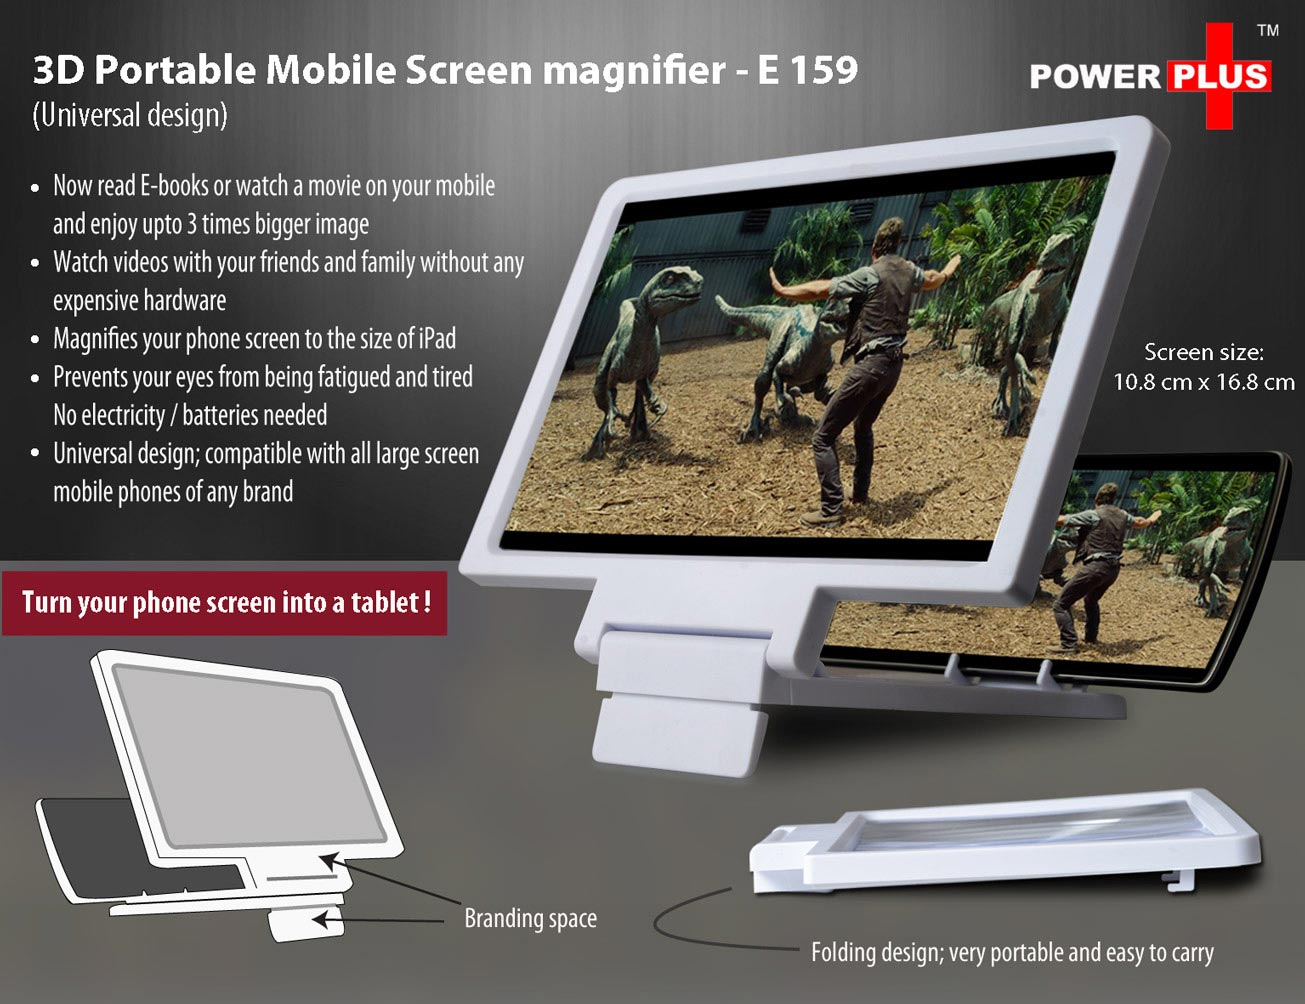 E159 - 3D Portable Mobile Screen Magnifier (Universal Design)